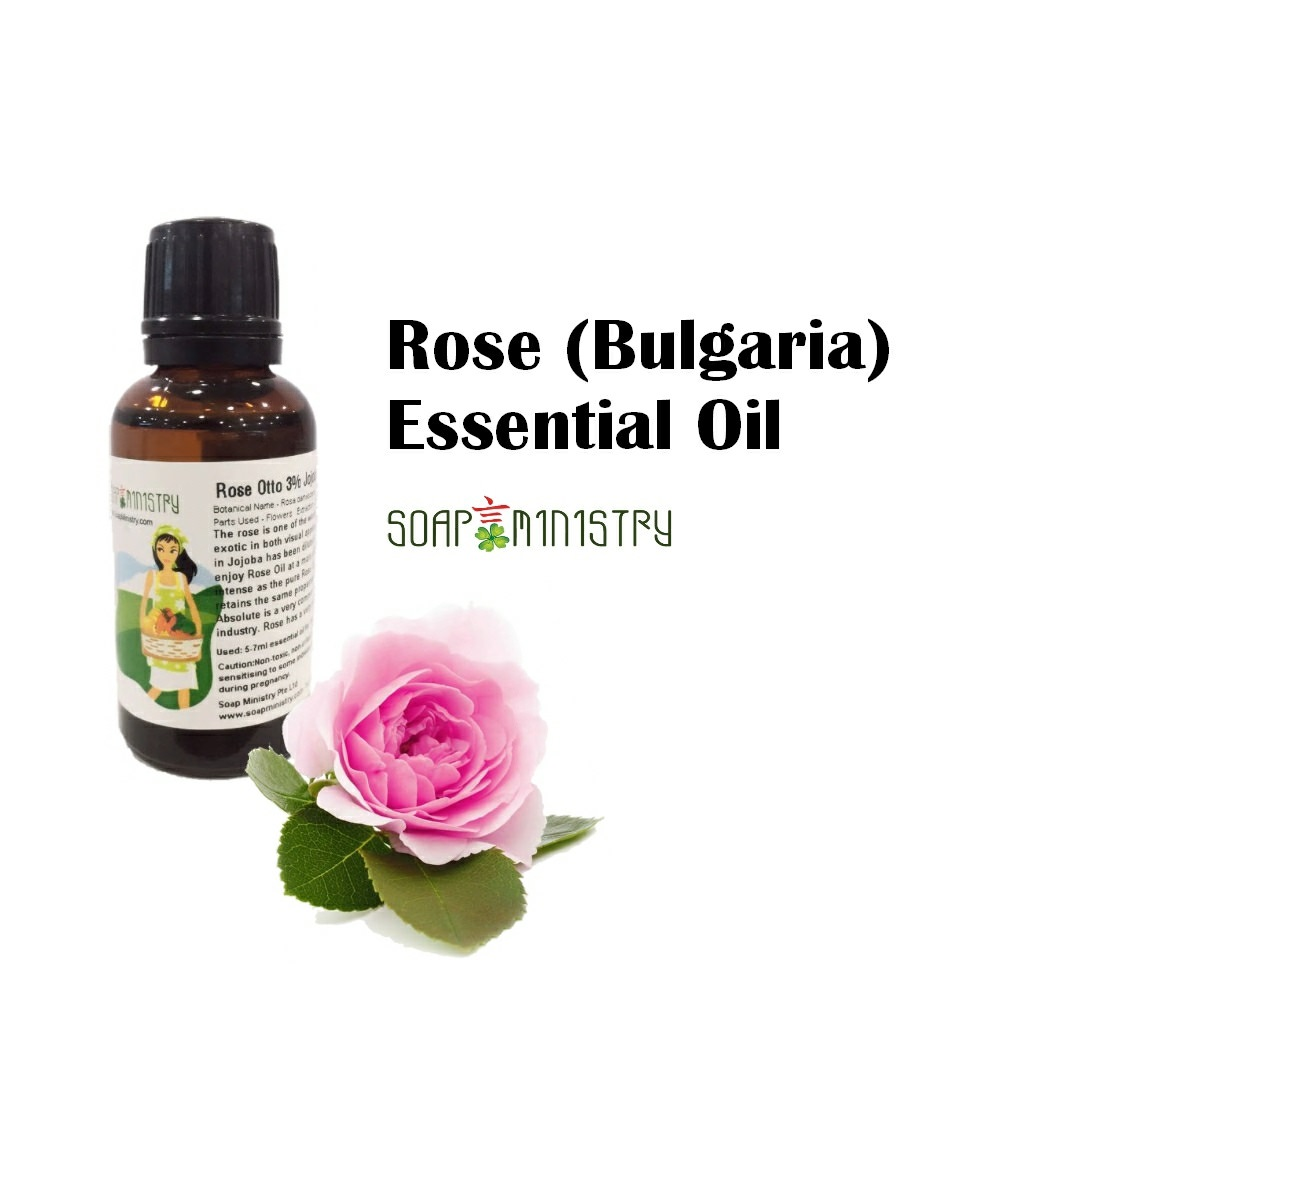 Rose Otto 3 Jojoba Essential Oil 10ml